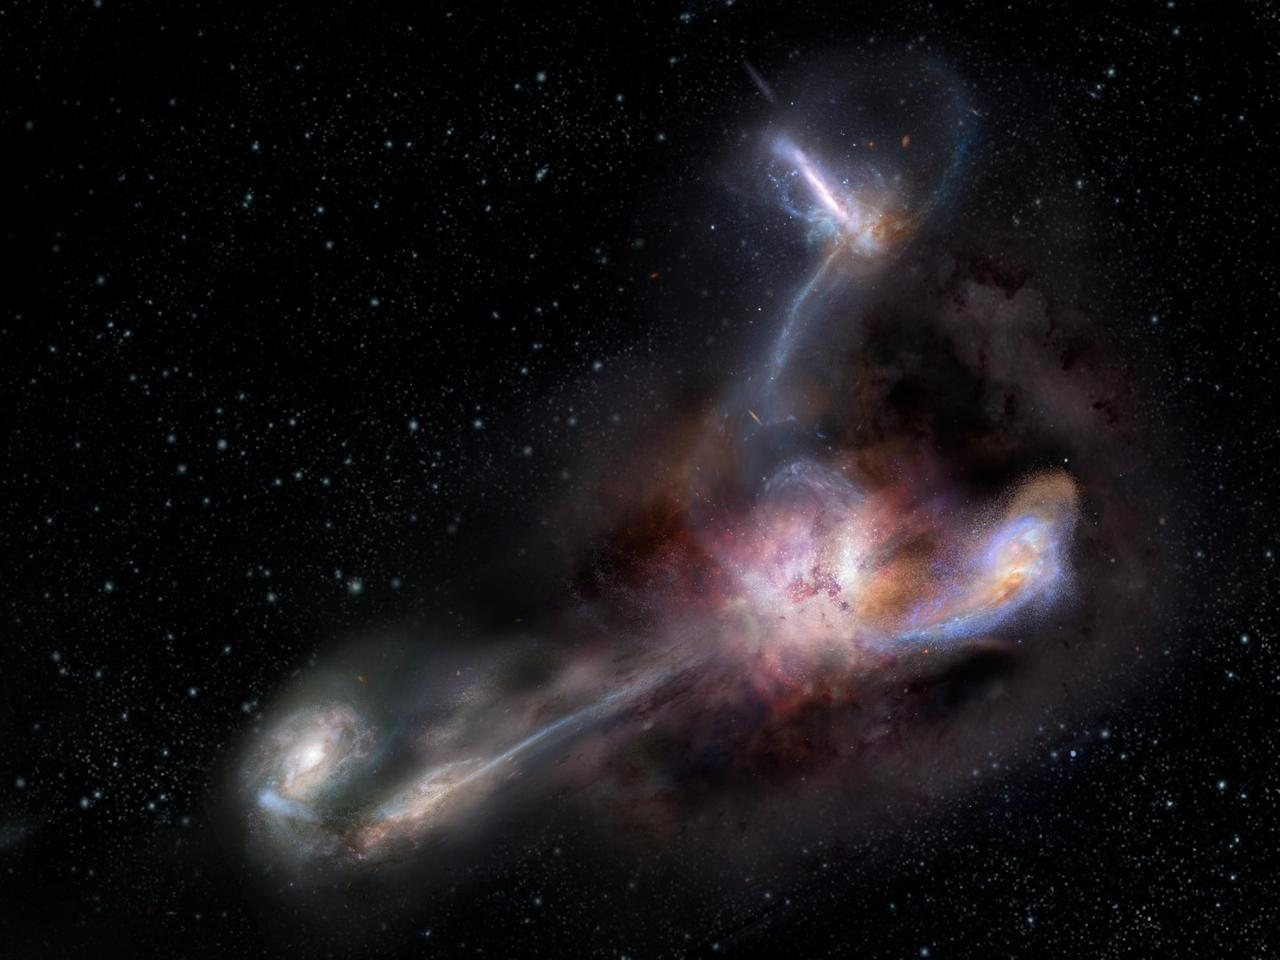 An artist's rendition of W2246-0526, the brightest-known galaxythat is cannibalizing three neighboring galaxies